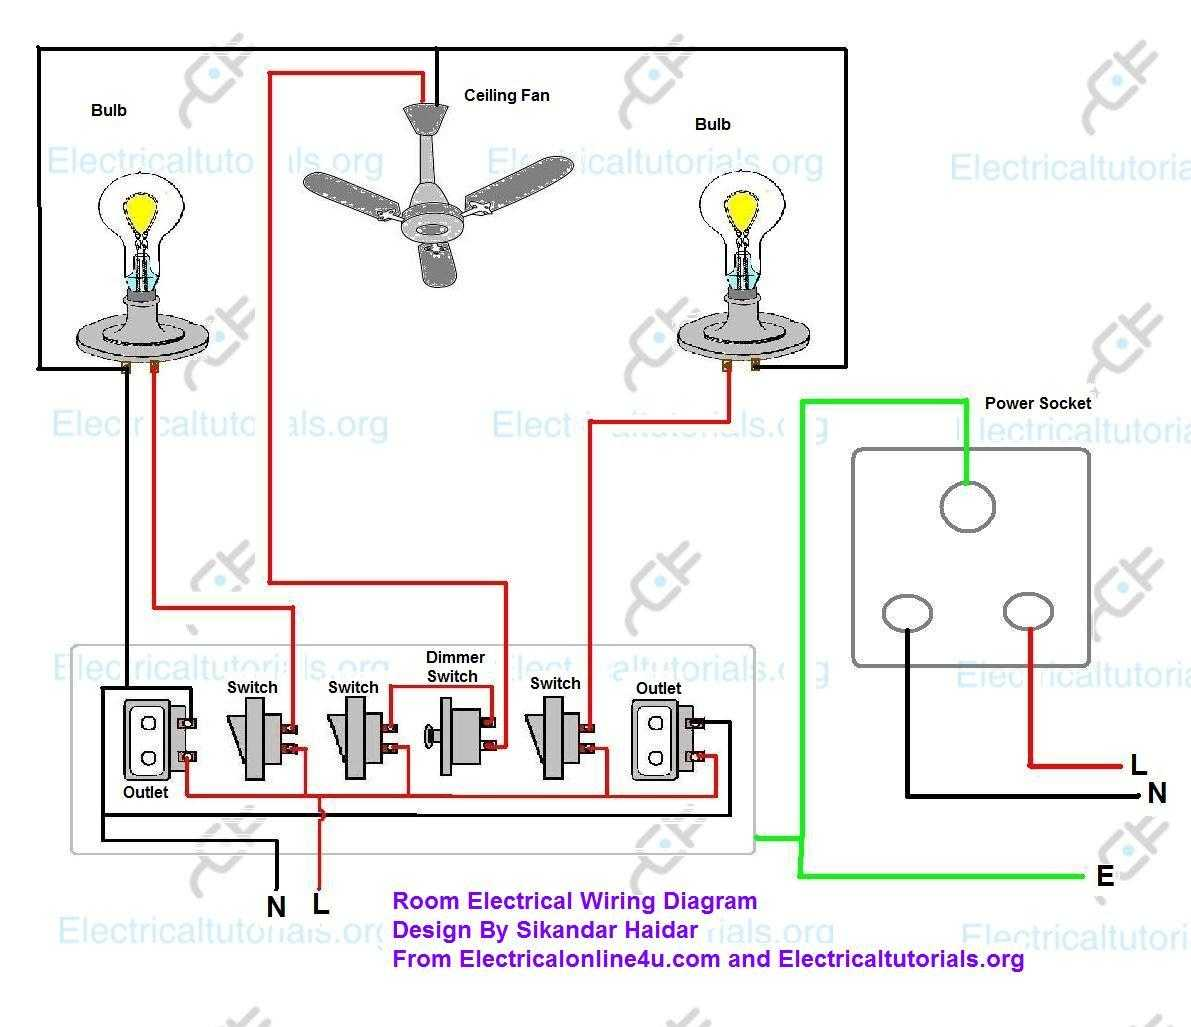 Switch Drawing At Free For Personal Use Electrical Wiring Diagrams Likewise Ceiling Fan Light 1191x1027 Household With Www